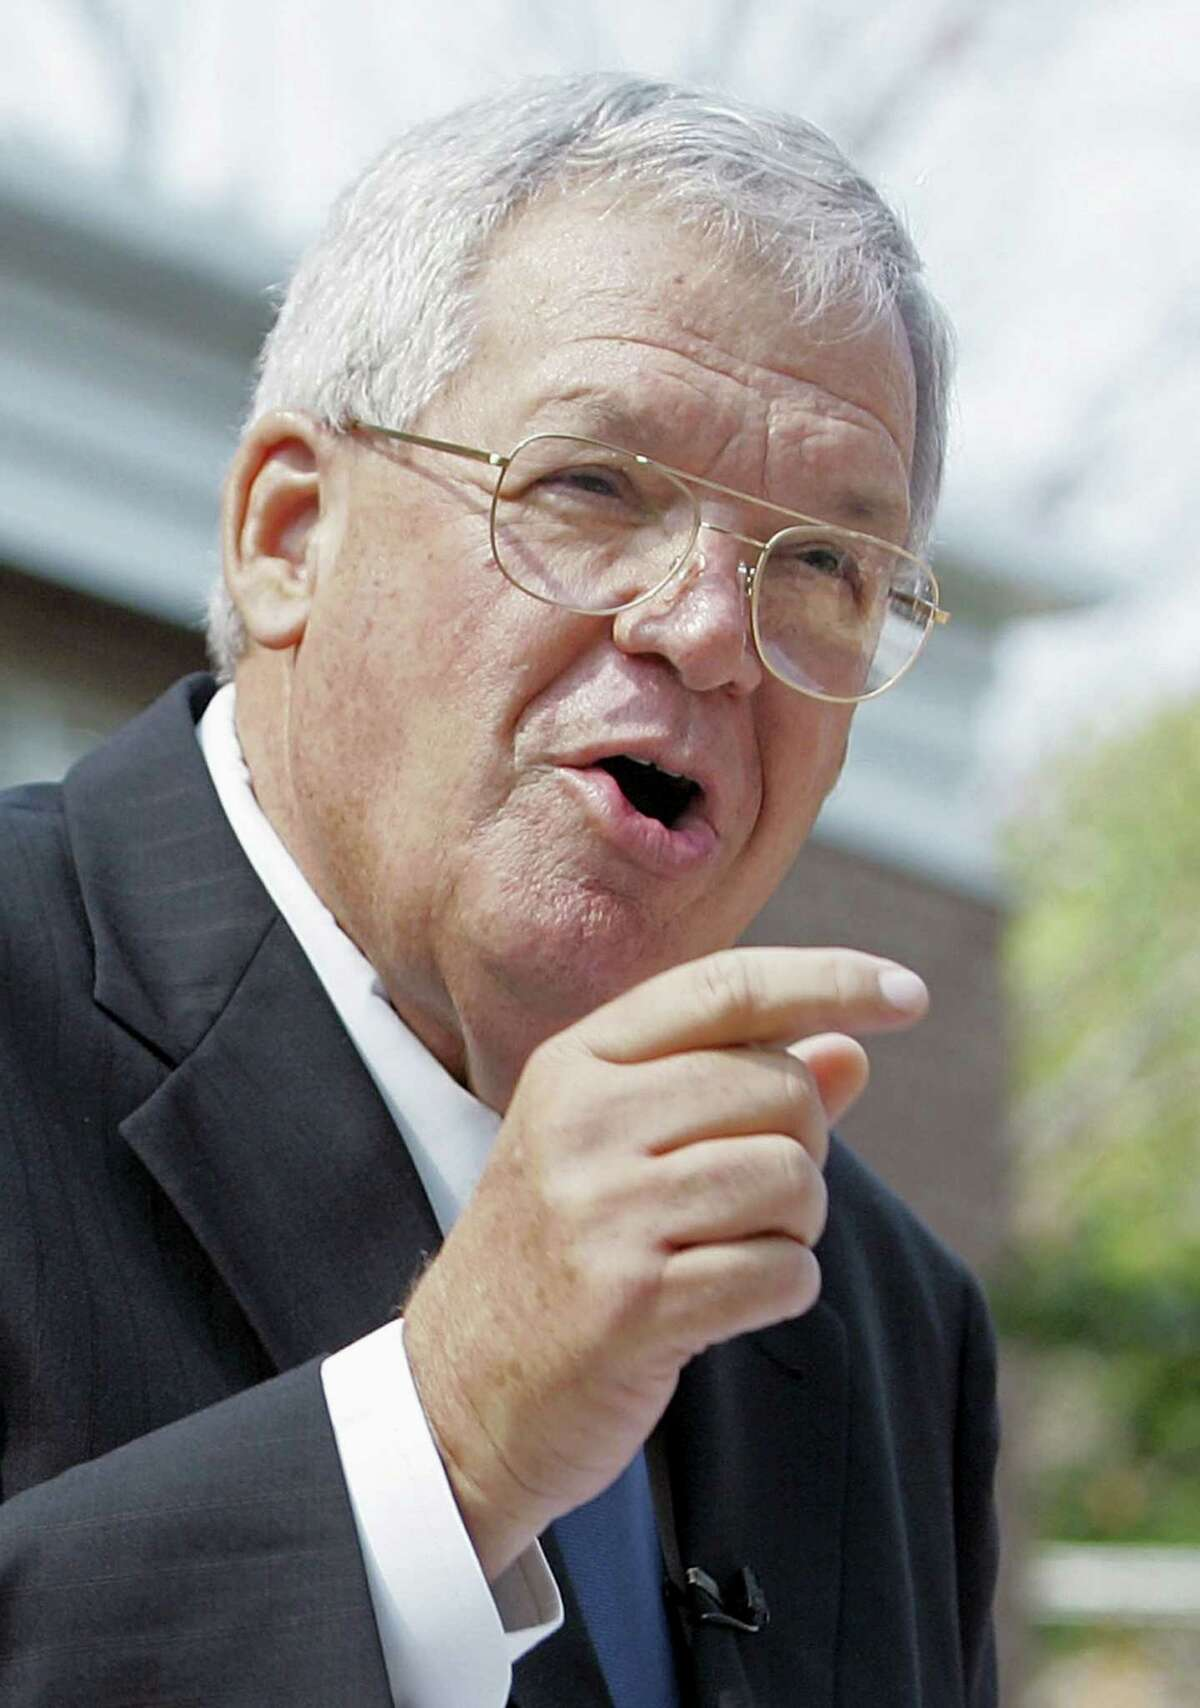 In this Aug. 17, 2007, file photo, former House Speaker Dennis Hastert, R-Ill., announces that he will not seek re-election for a 12th term in Yorkville, Ill. Federal prosecutors eventually indicted the former U.S. House Speaker on bank-related charges.